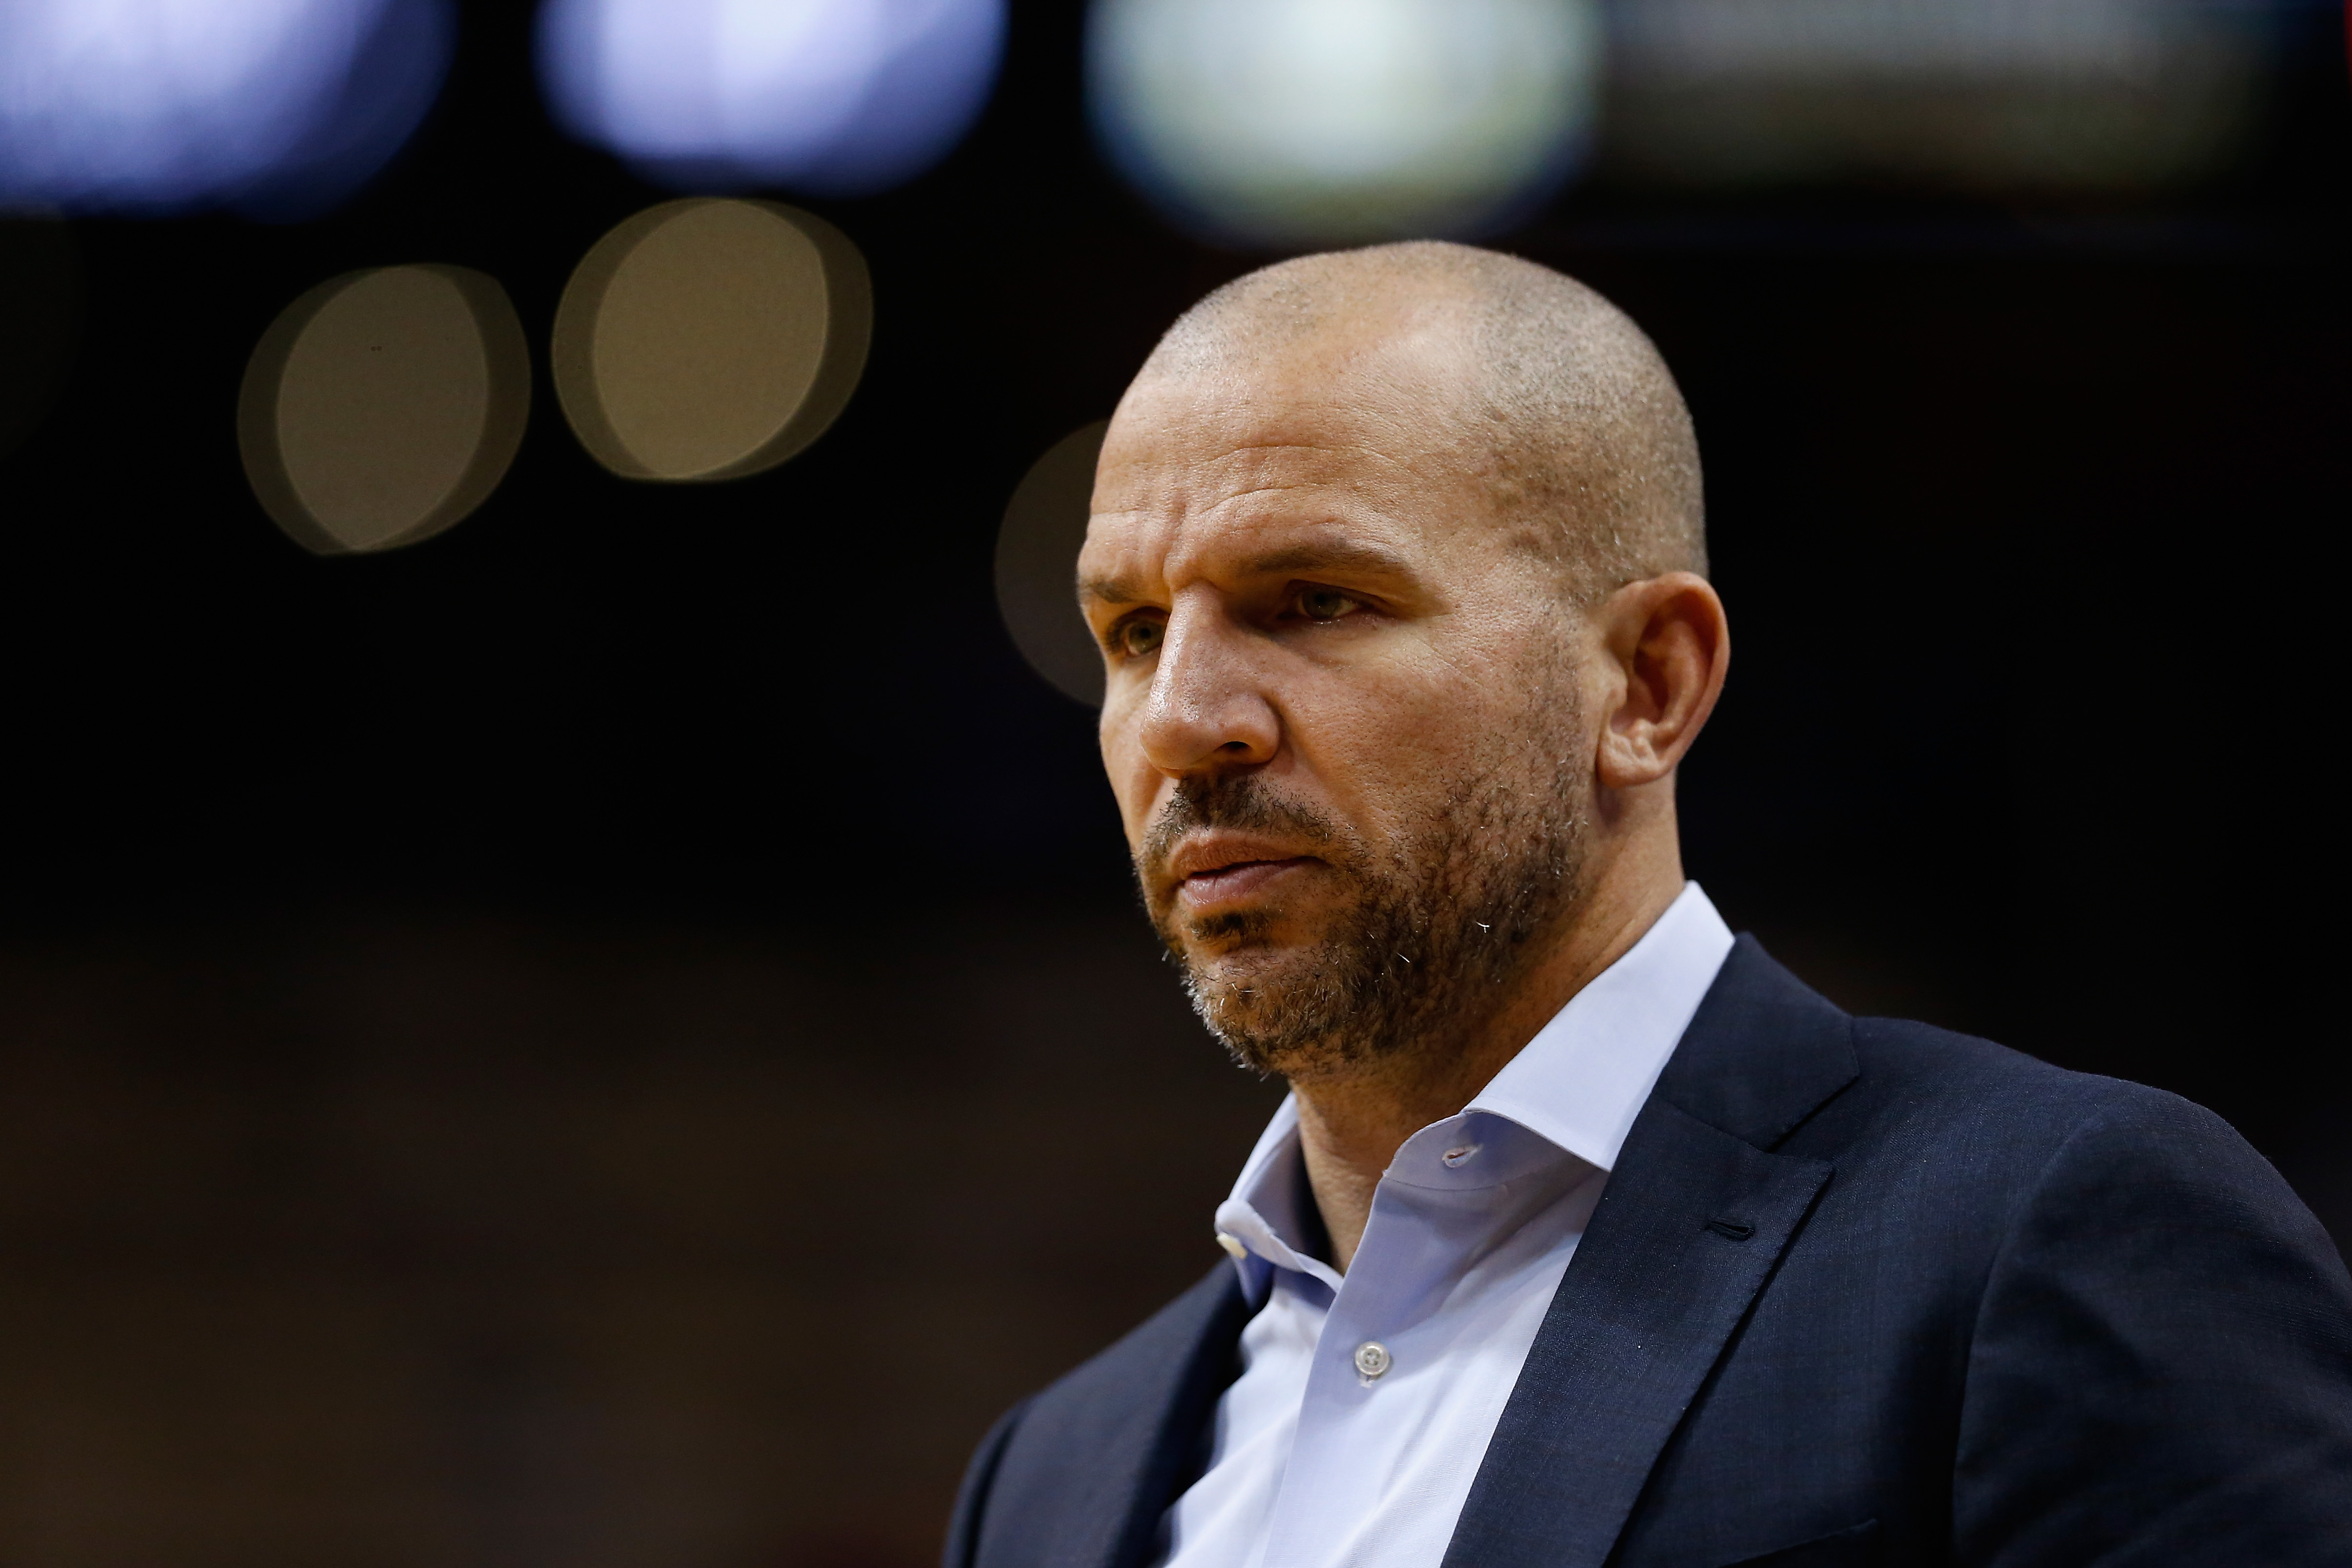 PHOENIX, AZ - DECEMBER 20:  Head coach Jason Kidd of the Milwaukee Bucks looks on during the second half of the NBA game against the Phoenix Suns at Talking Stick Resort Arena on December 20, 2015 in Phoenix, Arizona.  The Bucks defeated the Suns 101-95 (